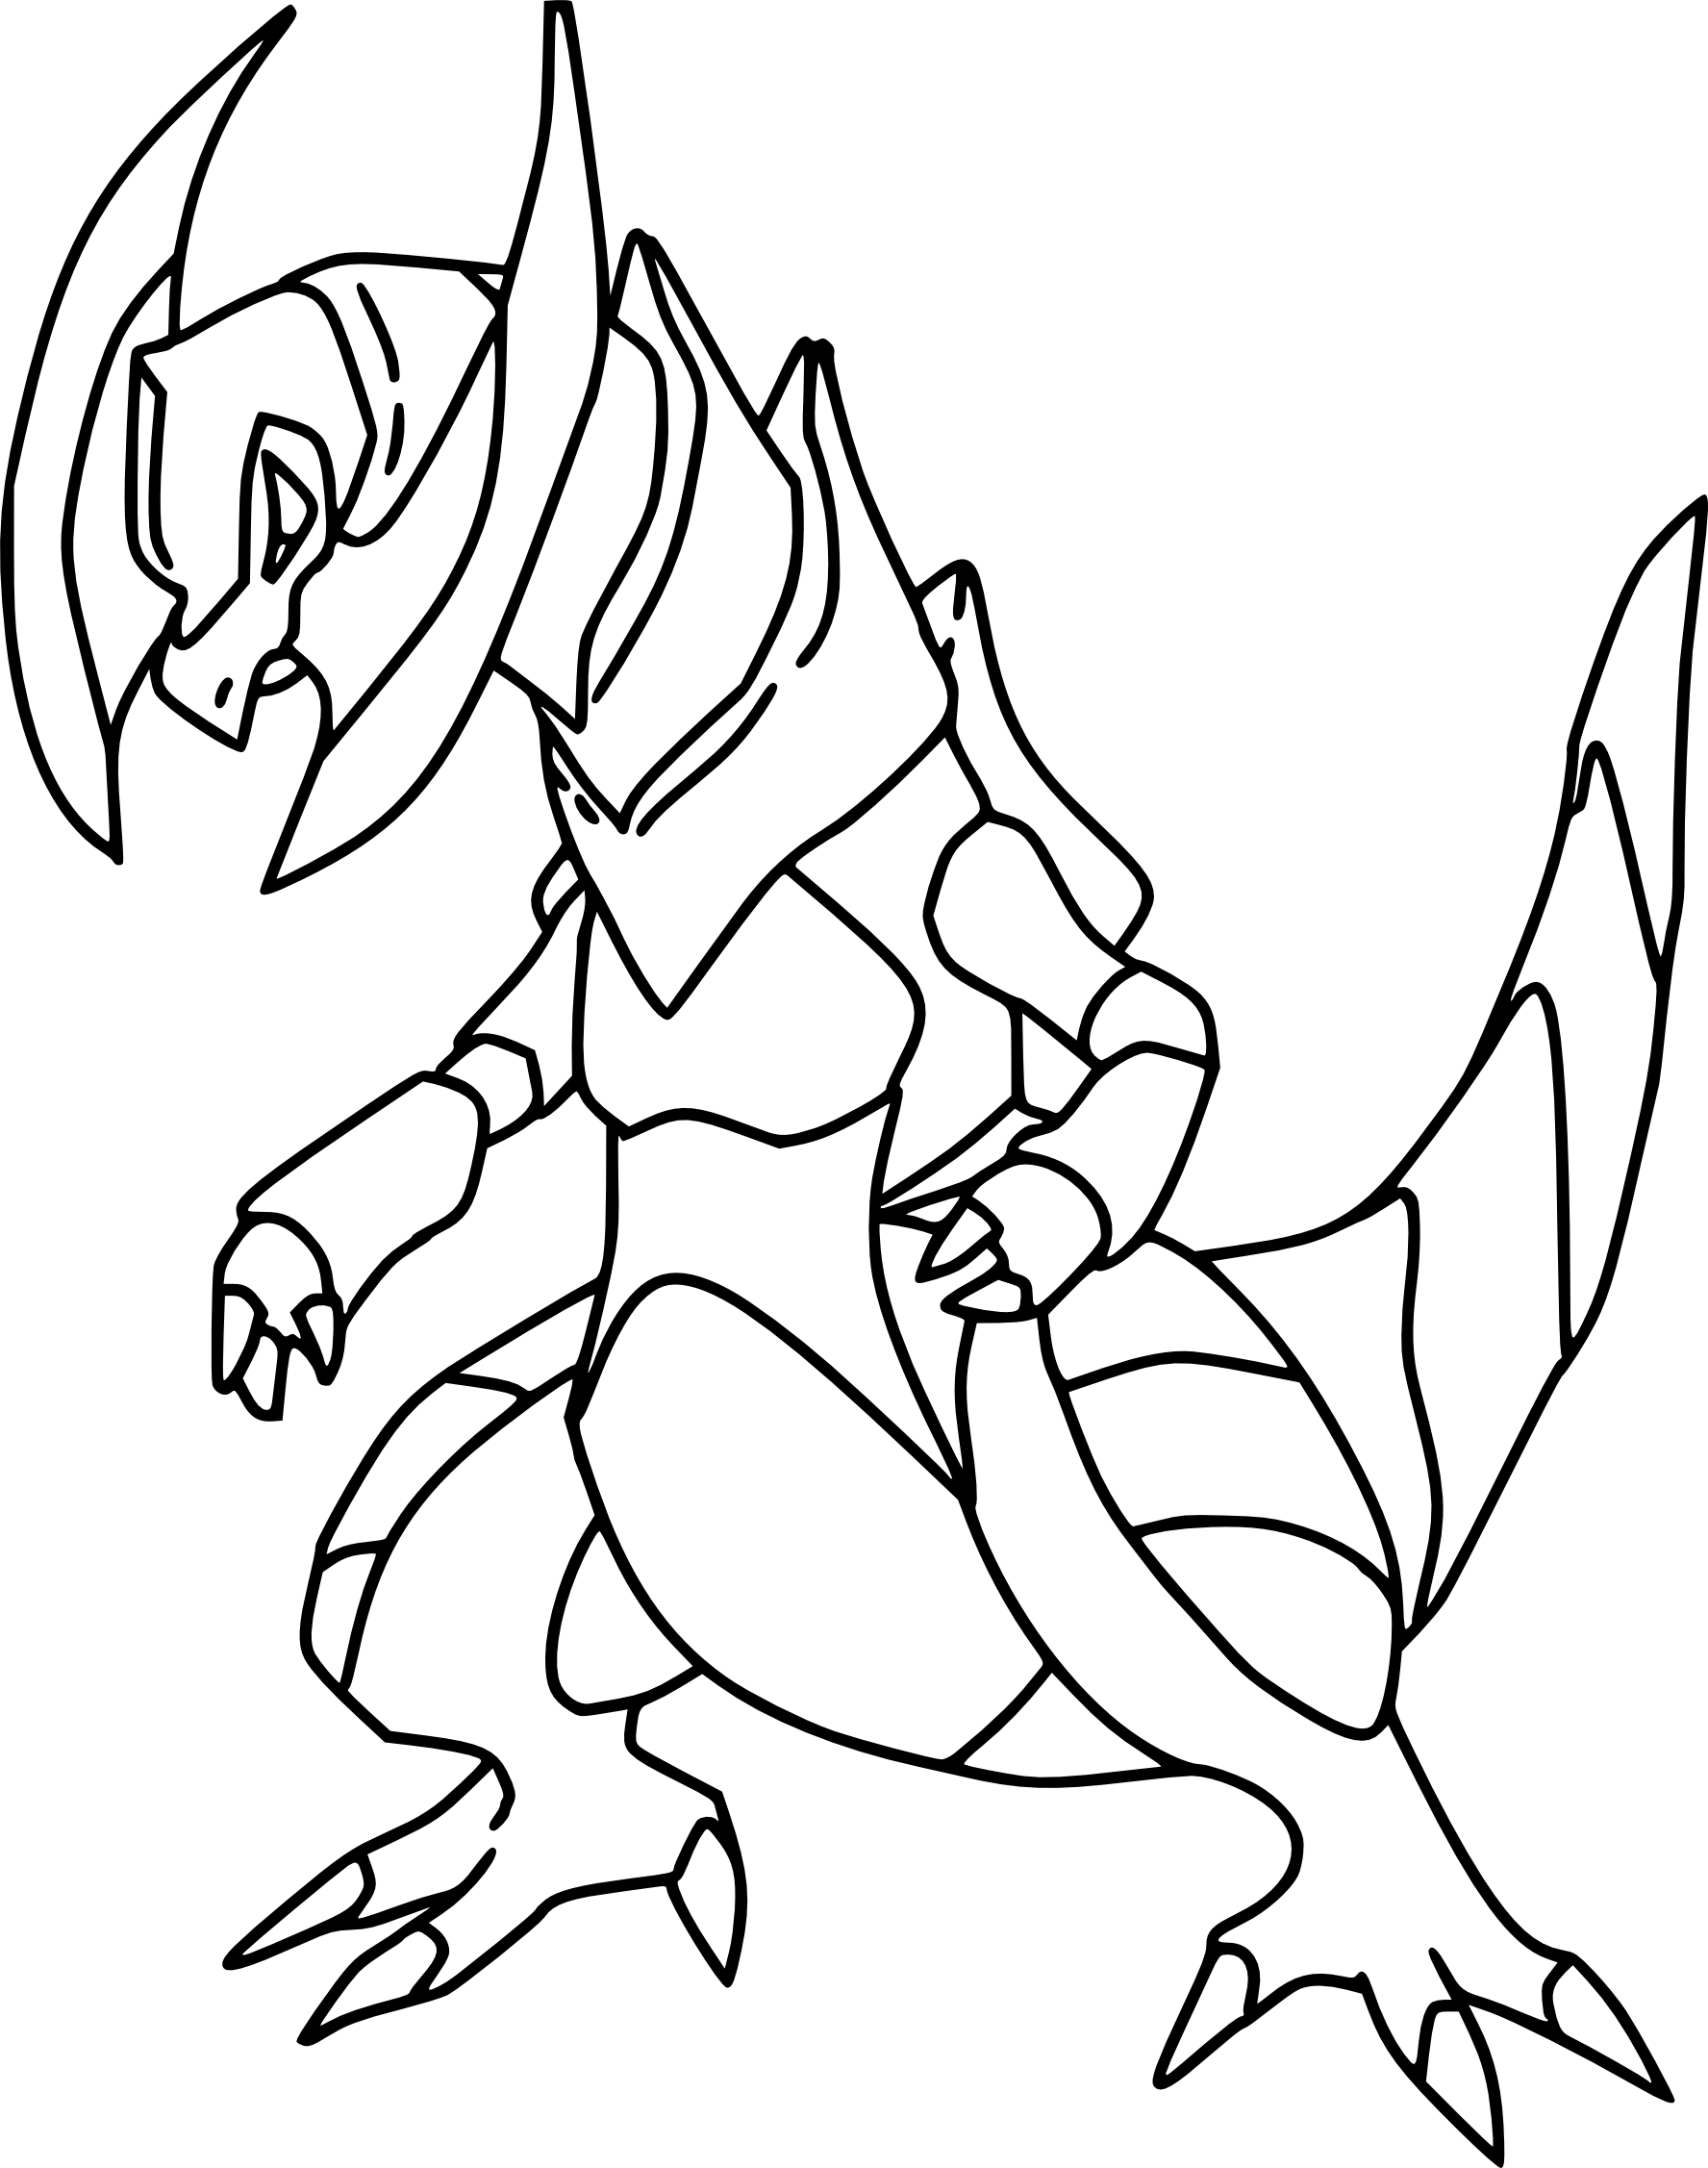 Pokemon coloring pages haxorus - View Larger Image Image